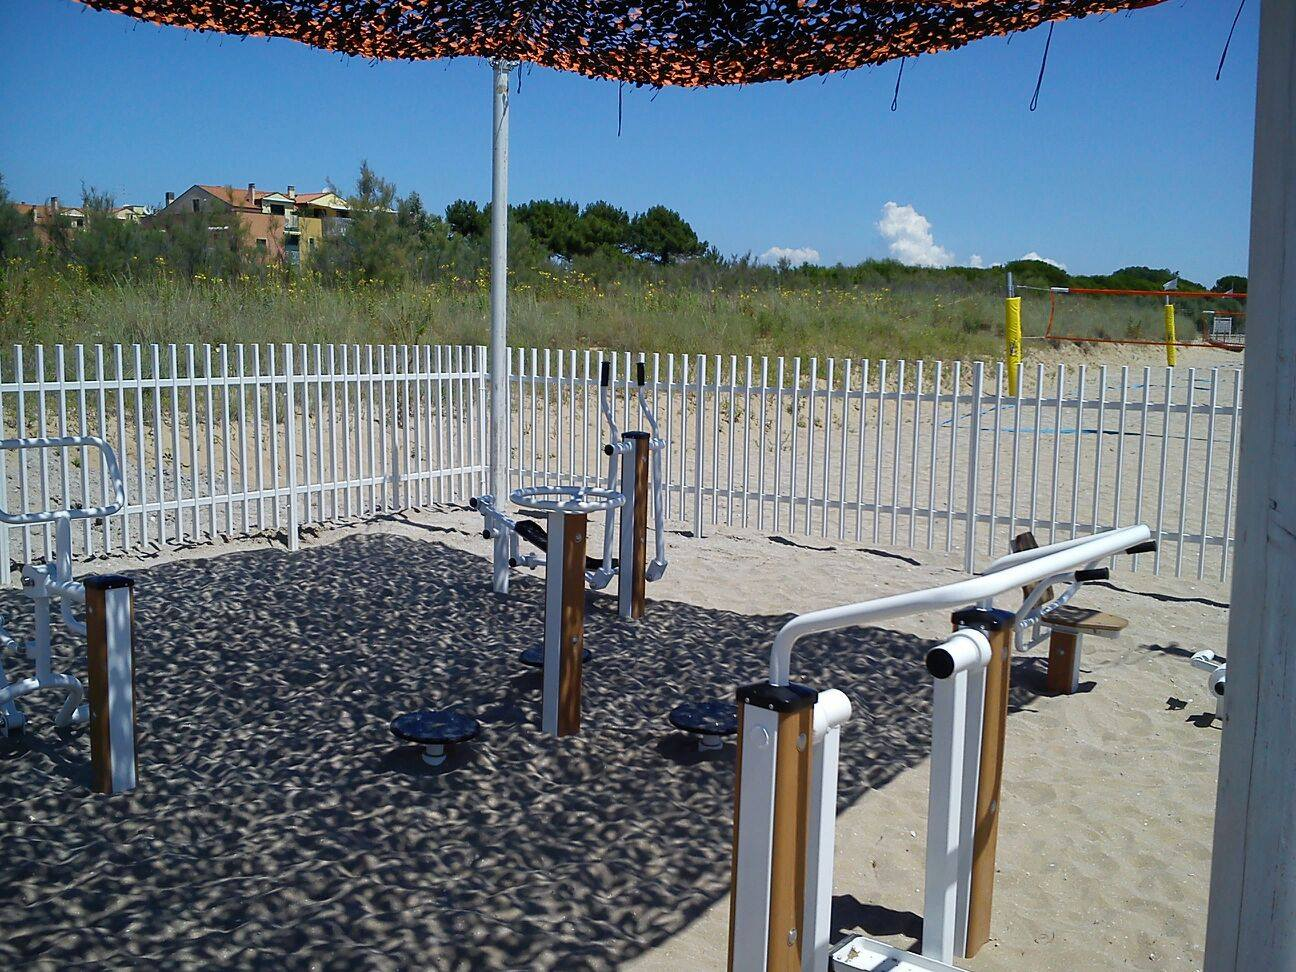 Who is park fitness equipment suitable for?